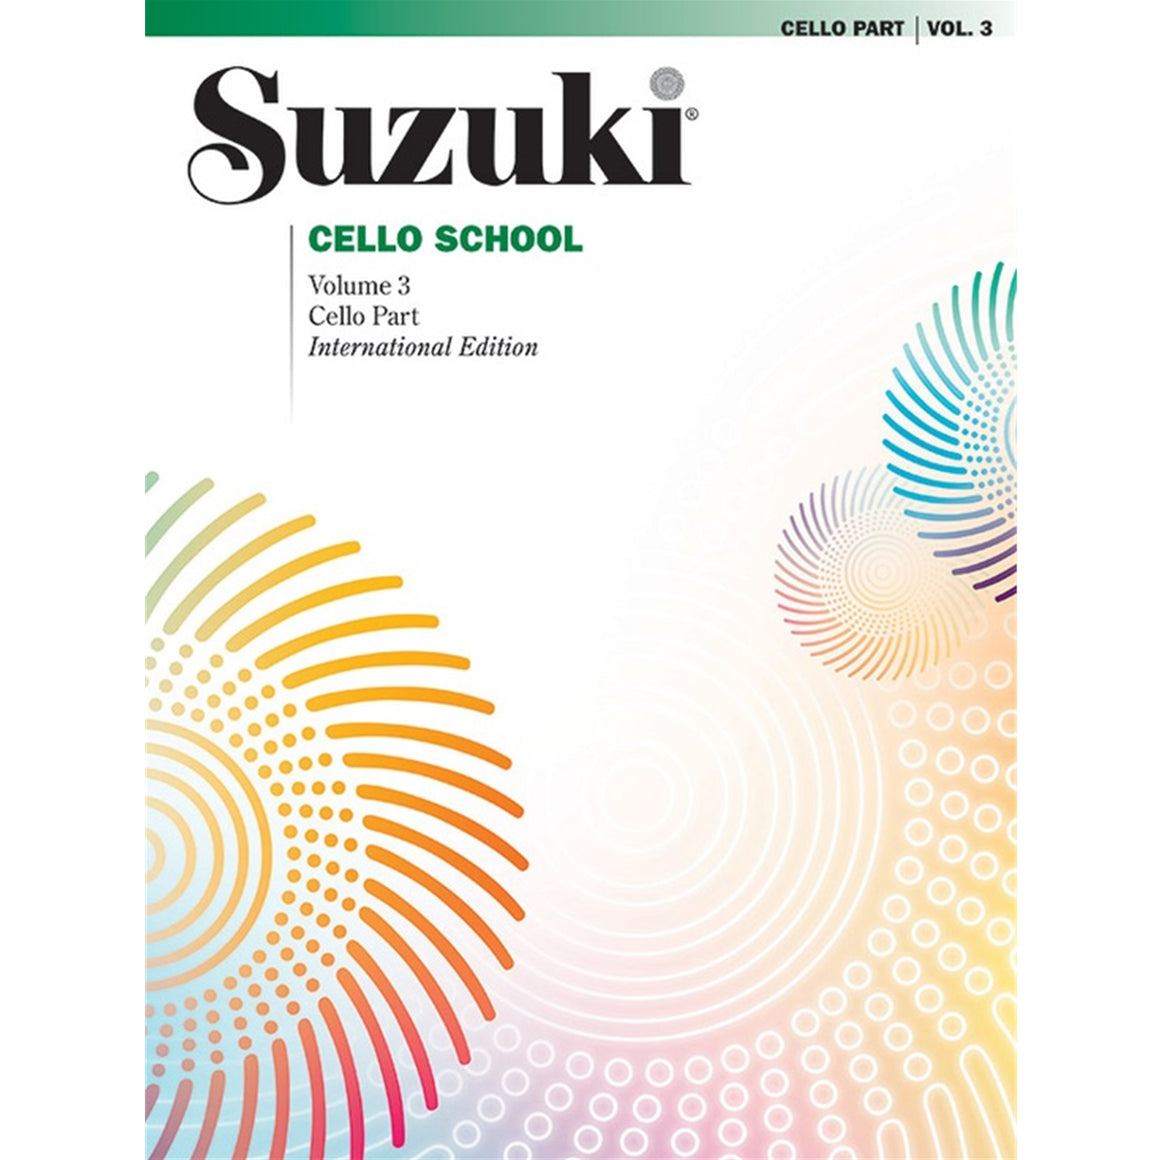 ALFRED 000483S Suzuki Cello School Cello Part, Volume 3 [Cello]